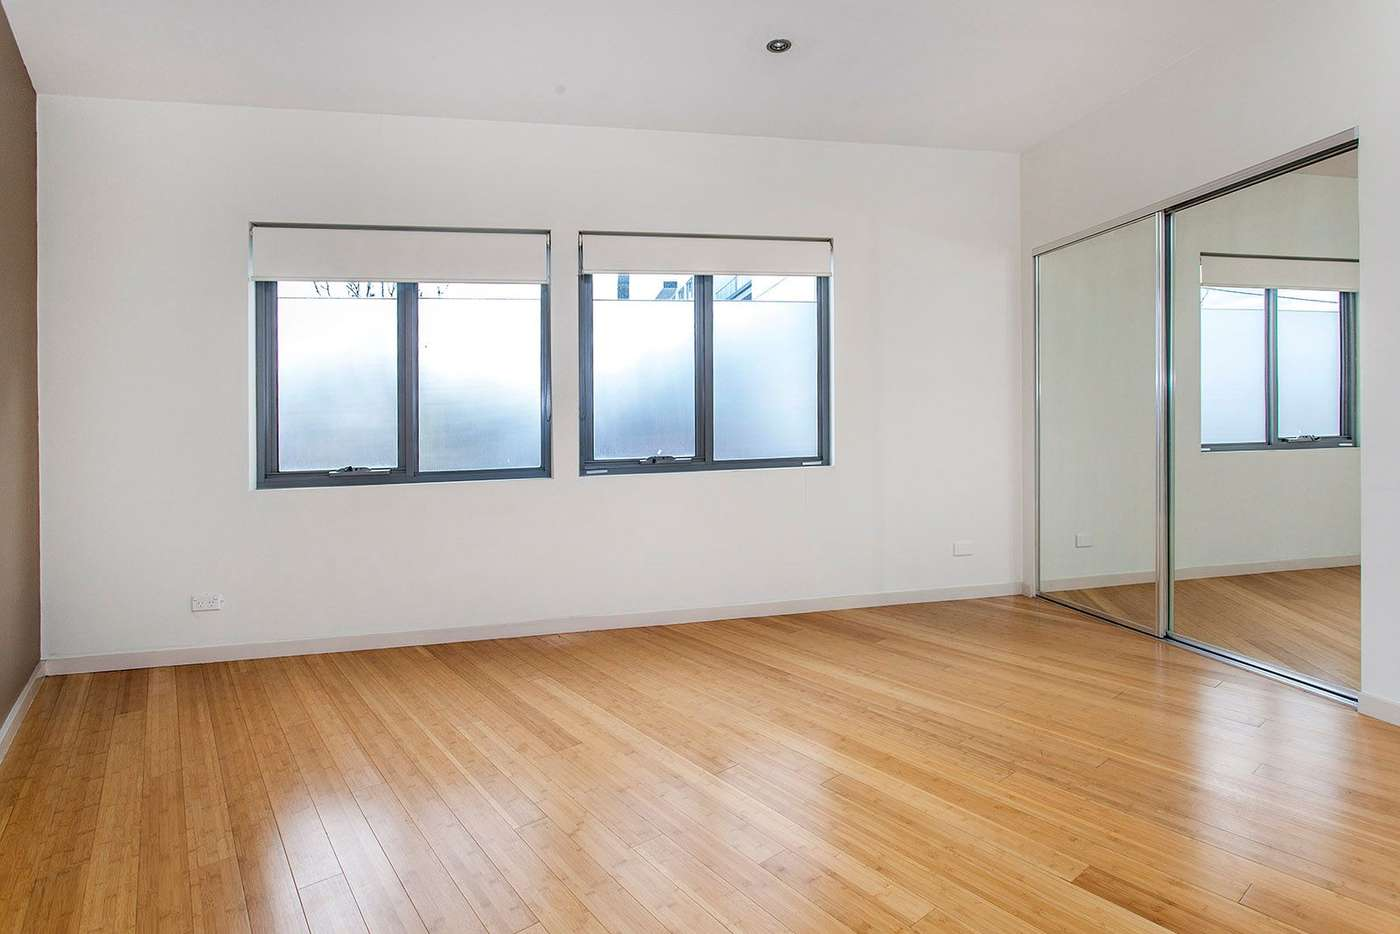 Fifth view of Homely apartment listing, 13/1 Kenilworth Parade, Ivanhoe VIC 3079